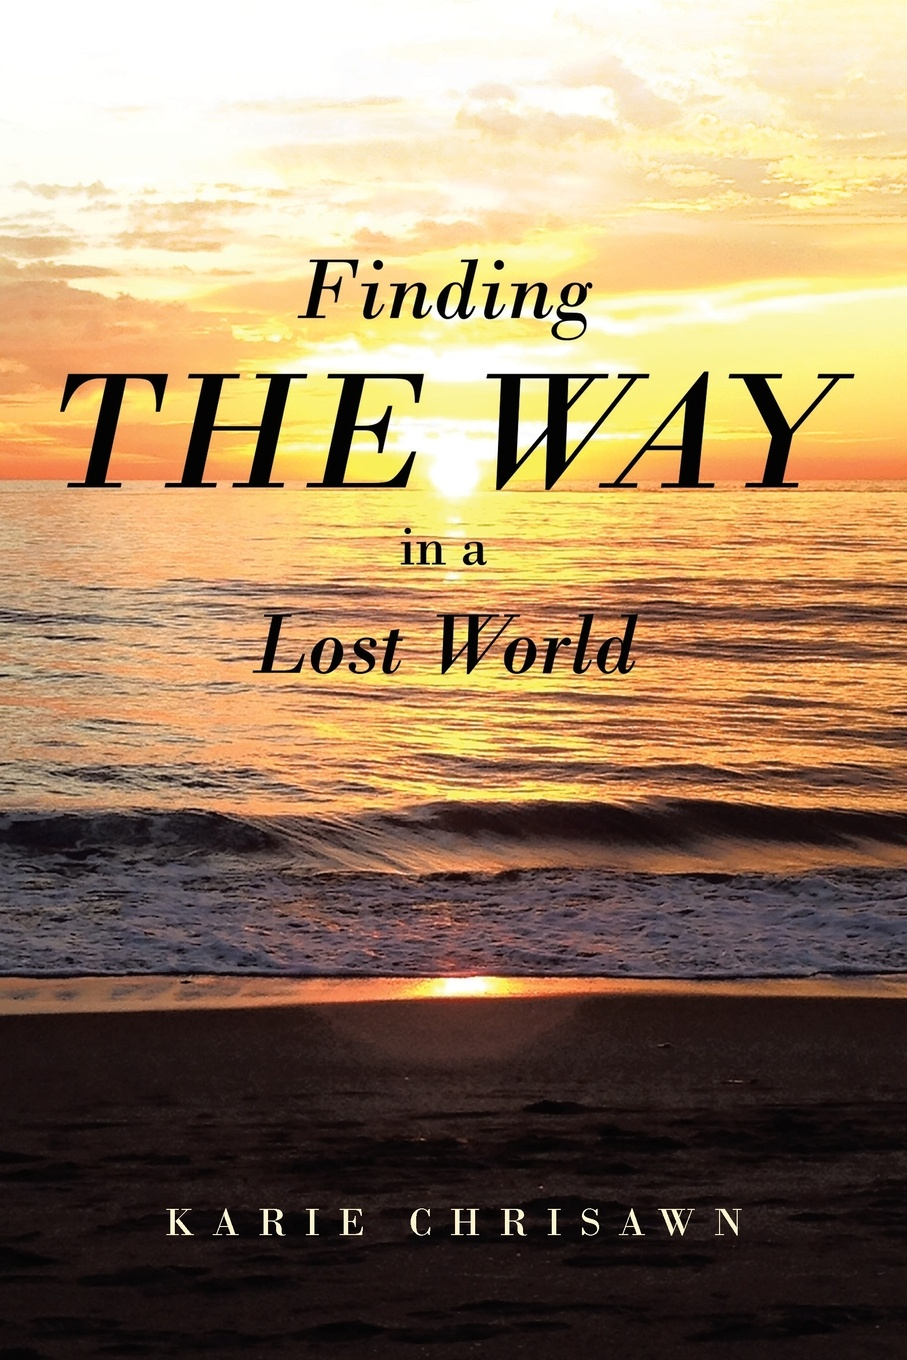 лучшая цена Karie Chrisawn Finding The Way In A Lost World